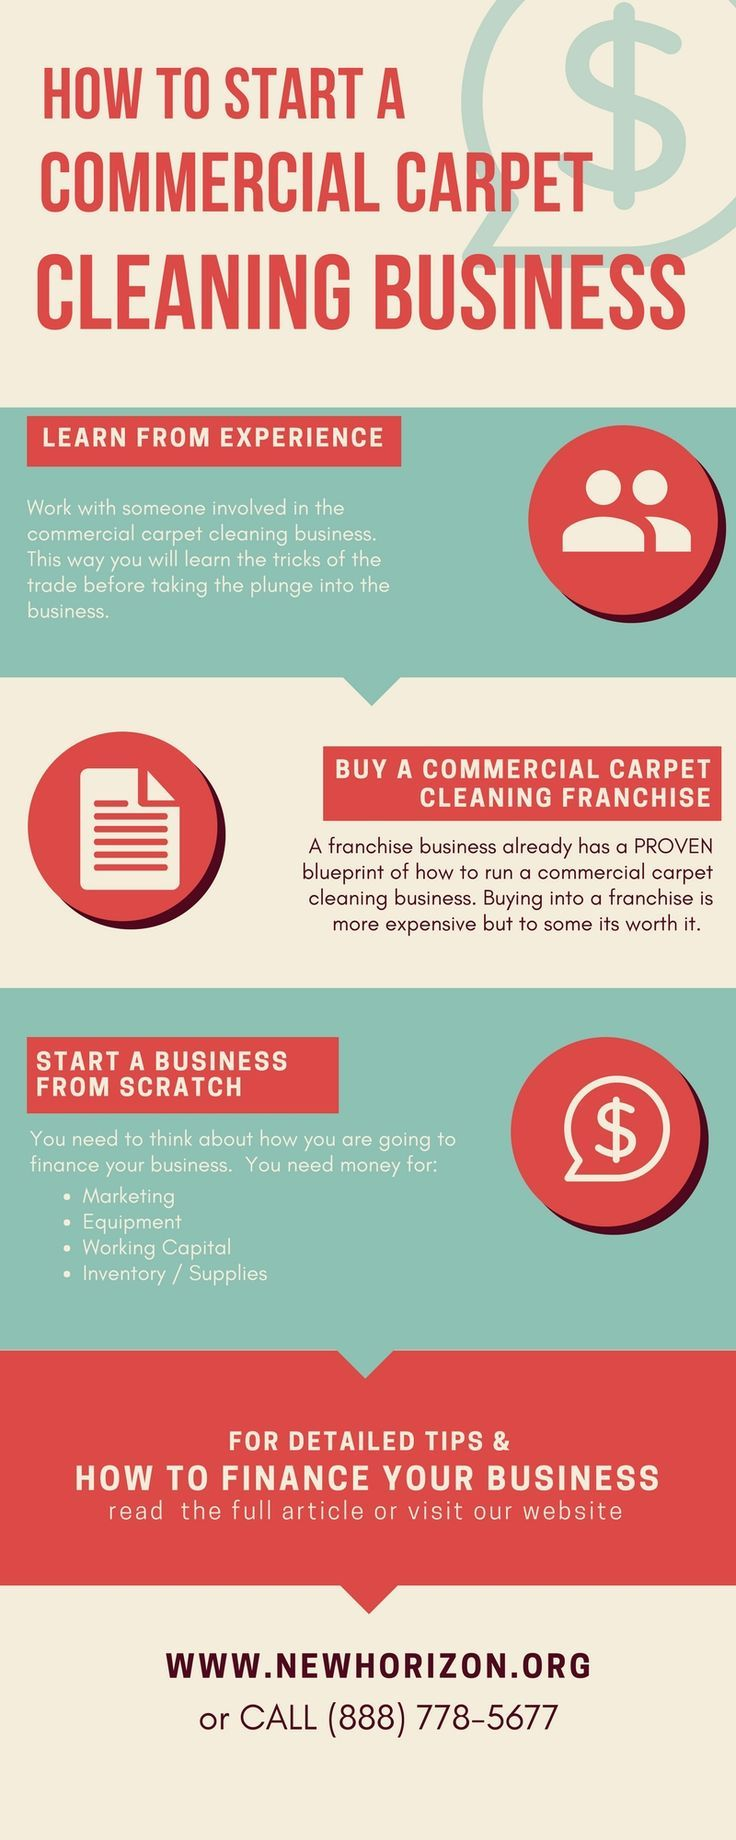 Commercial carpet cleaning is one of the easiest to start, as well as lucrative businesses that an entrepreneur can start. If you are considering going into this type of business the following are some consideration and recommendations.